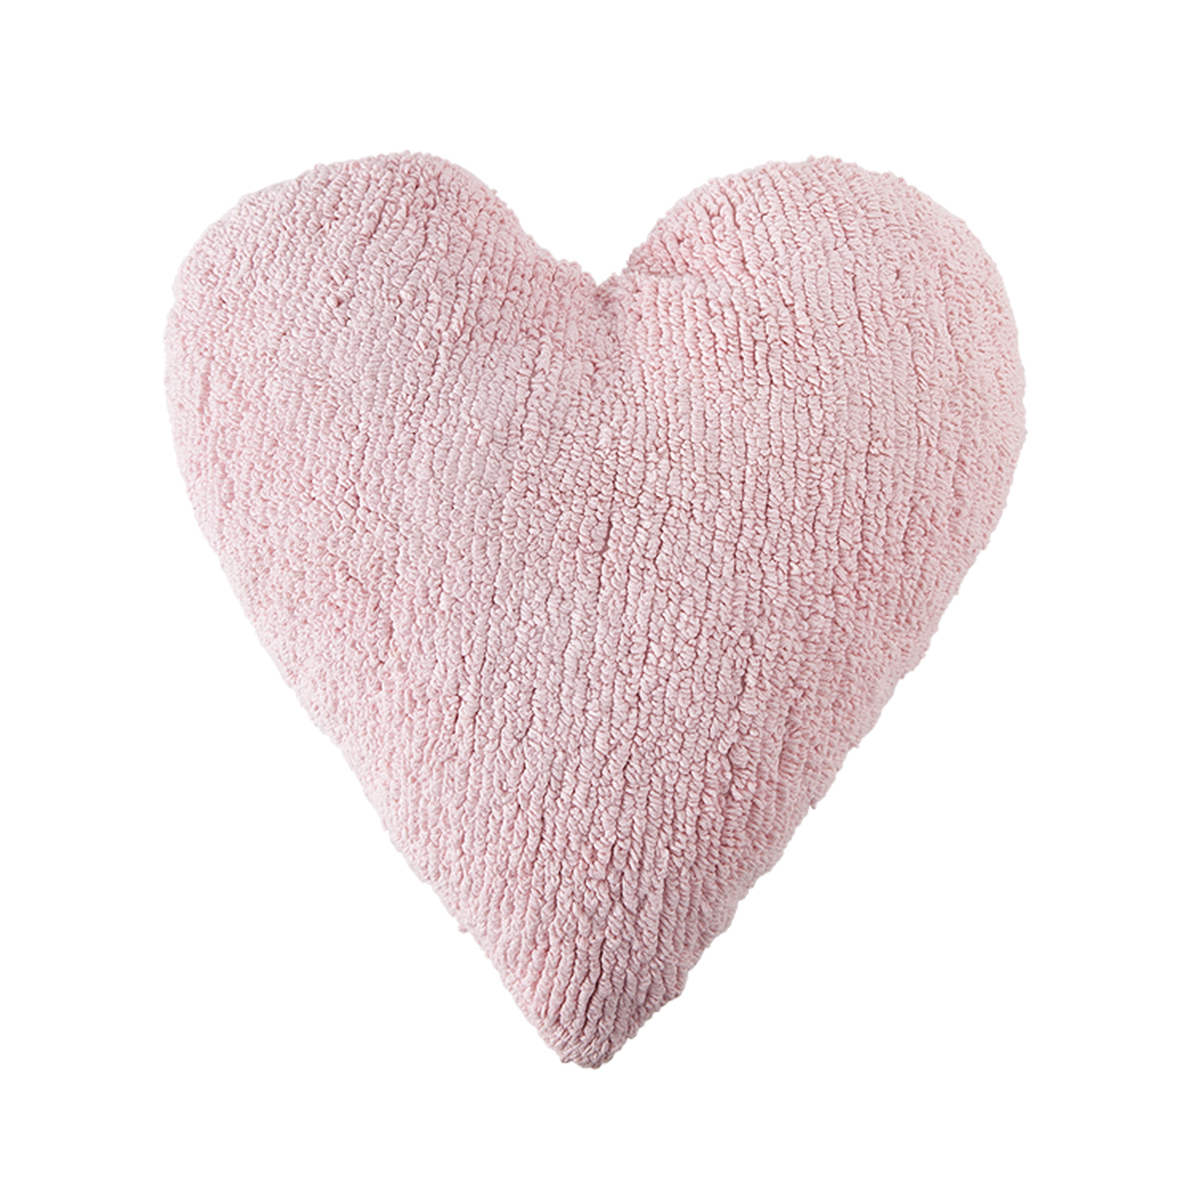 Lorena Canals Cushion Heart Pink